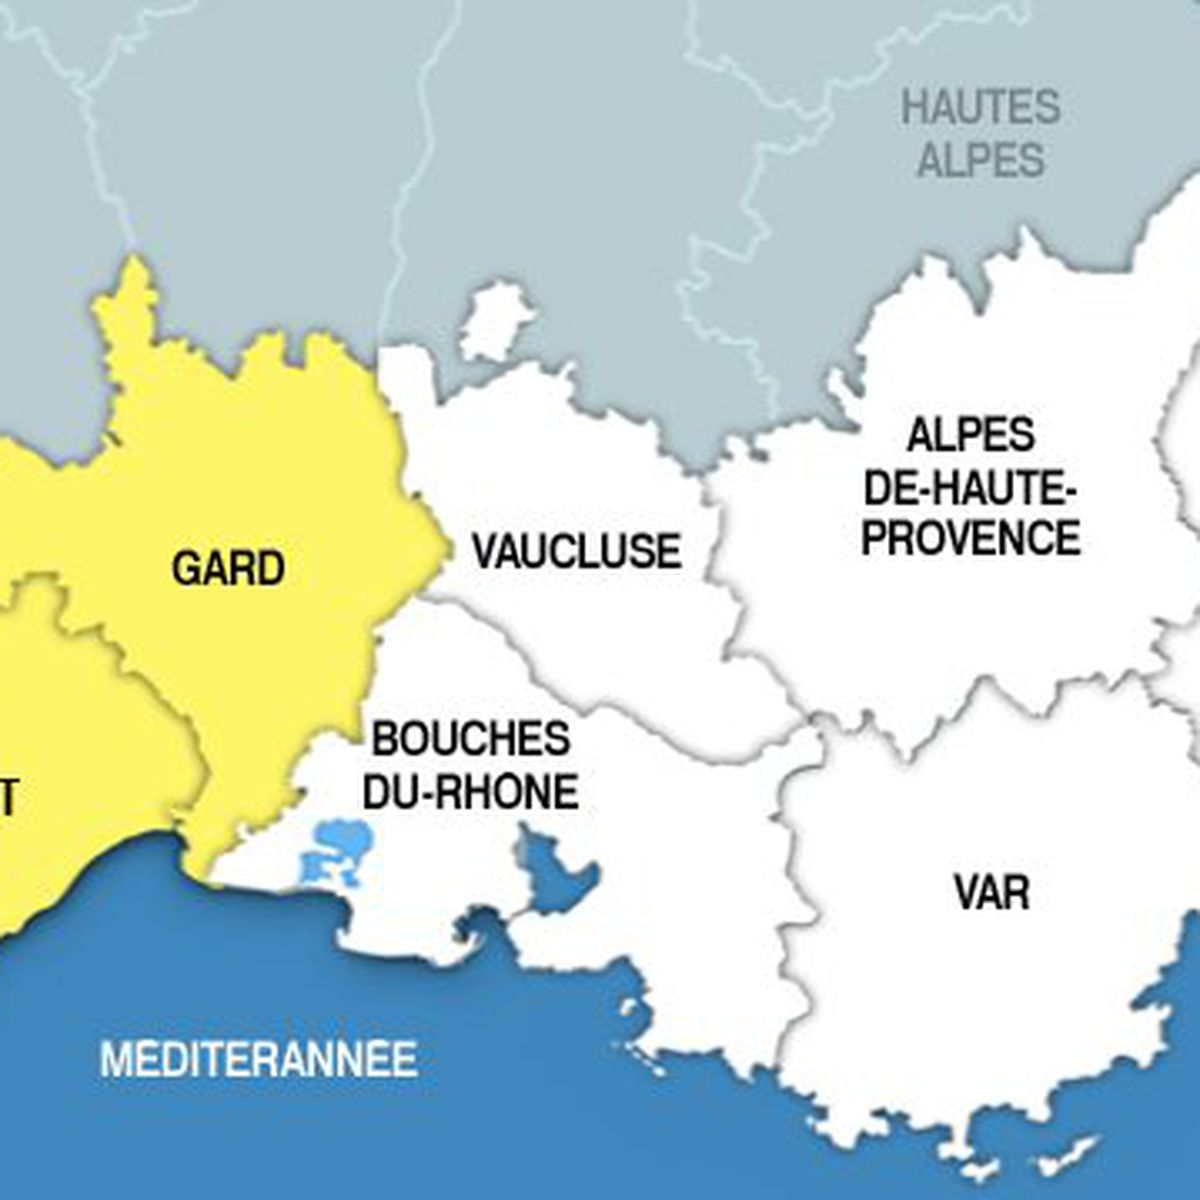 La Future Carte De La Region